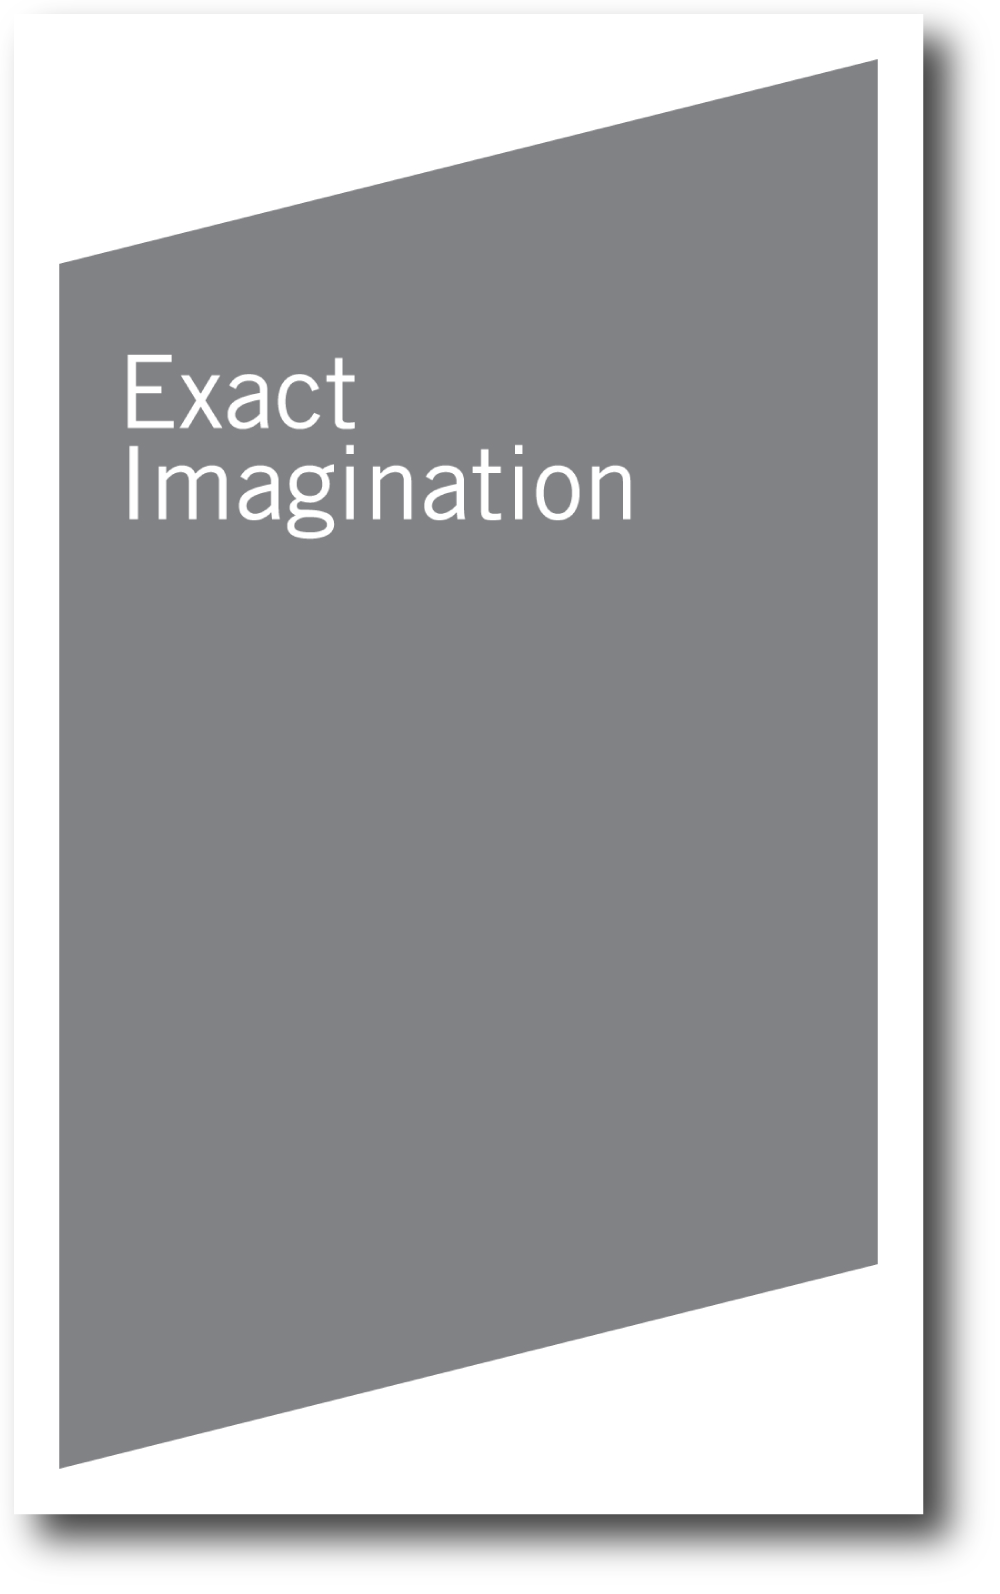 BOC-Publication-Exact-Imagination-cover.png